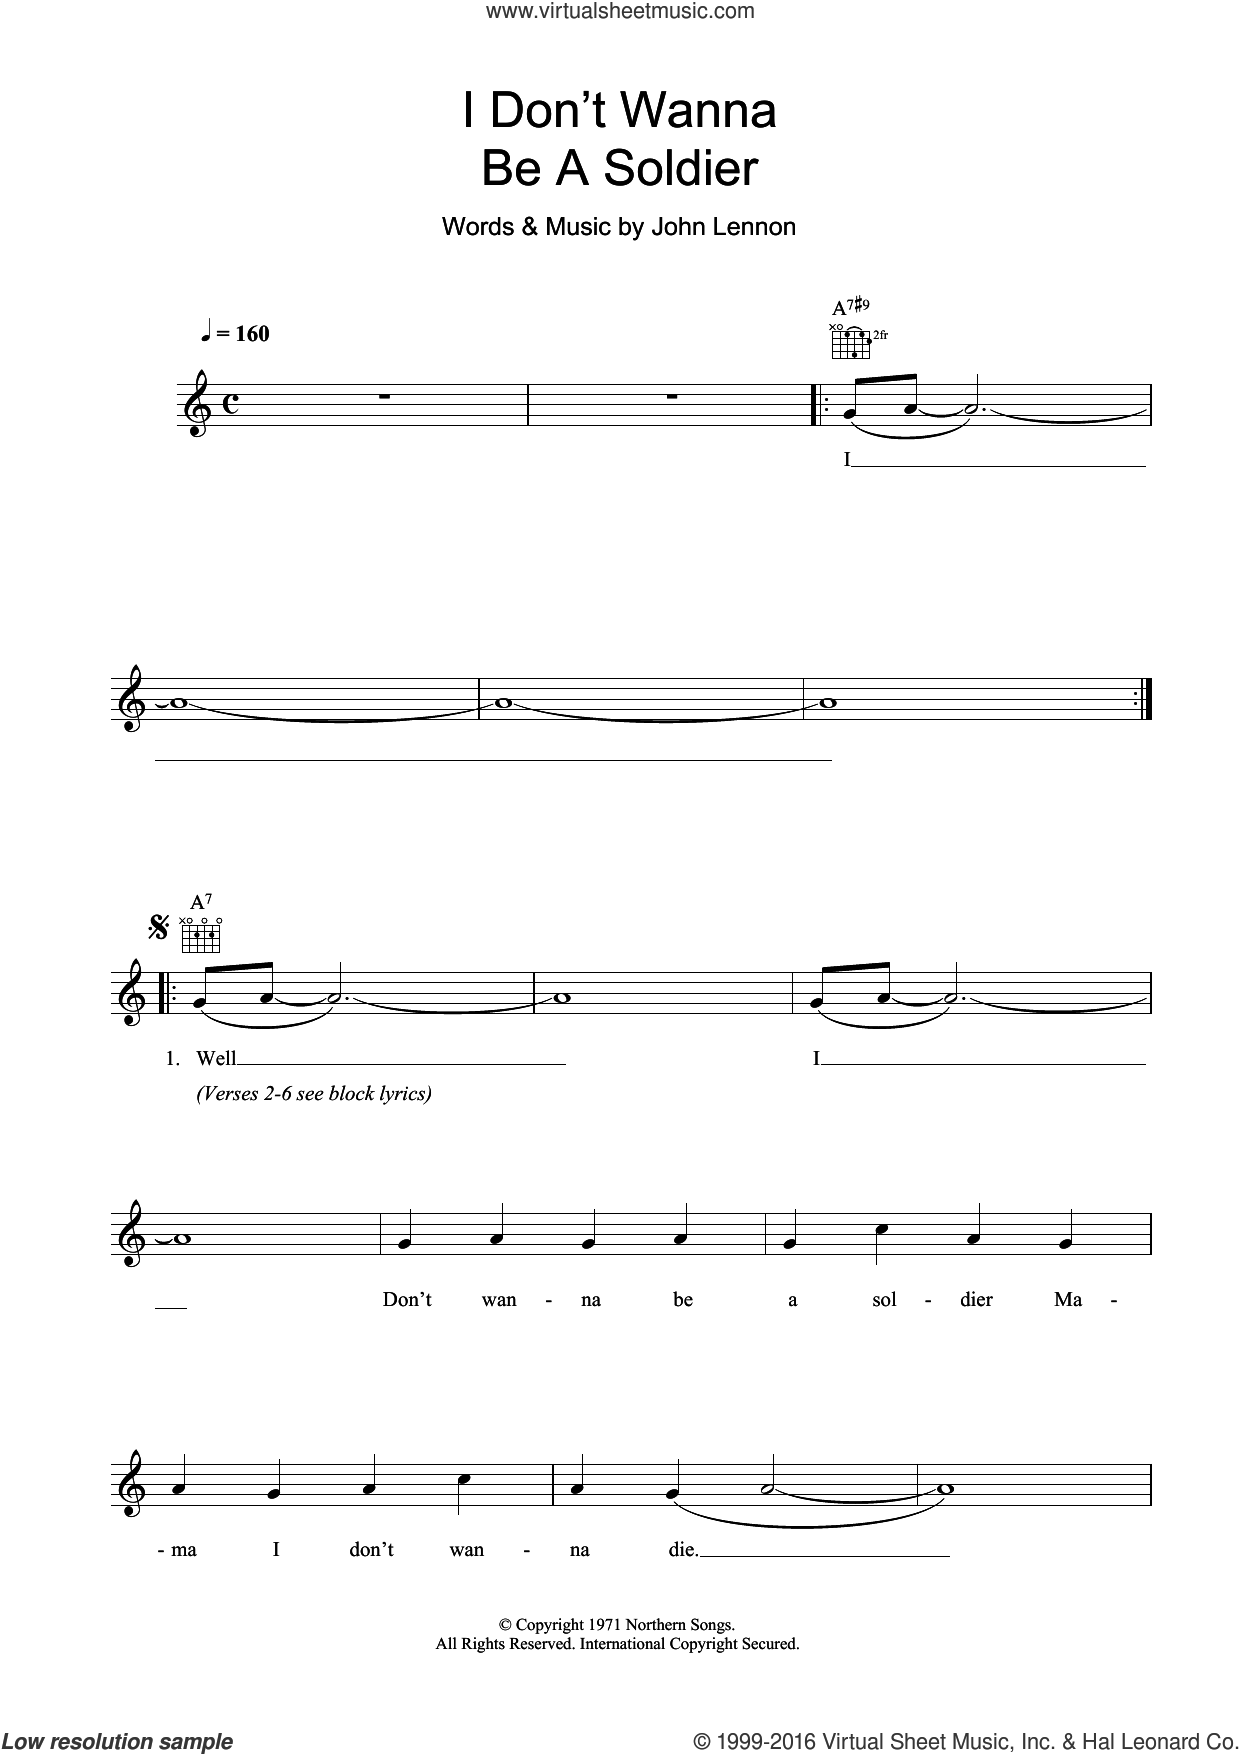 I Don't Wanna Be A Soldier sheet music for voice and other instruments (fake book) by John Lennon, intermediate skill level